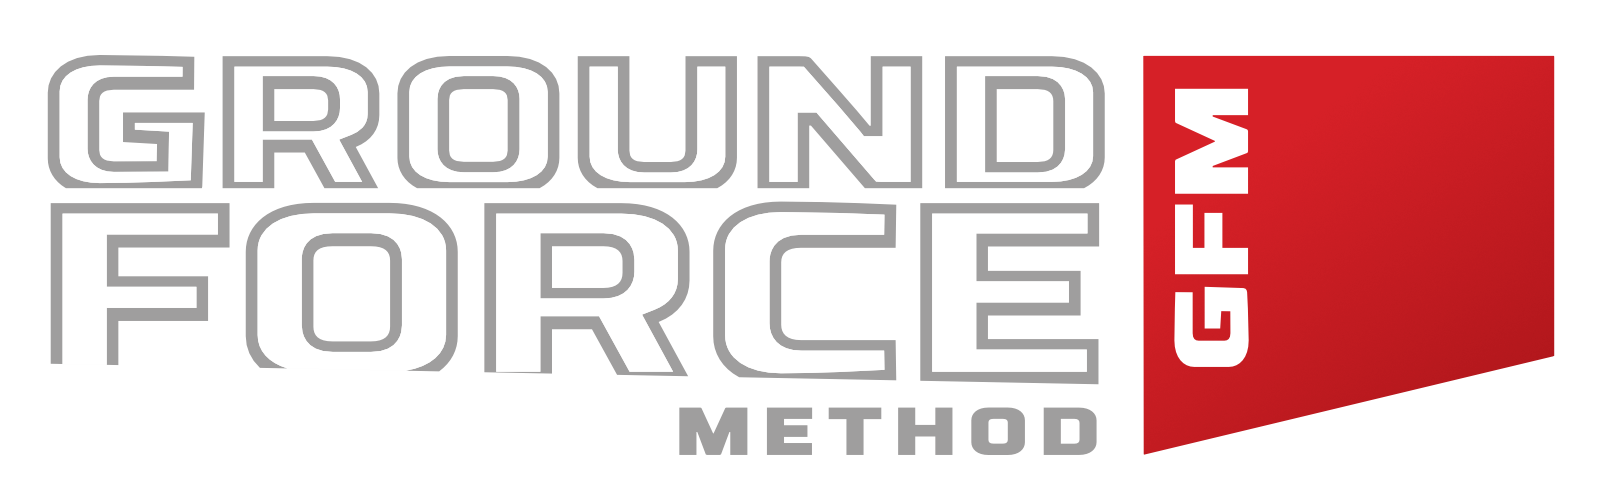 groundforcemethod